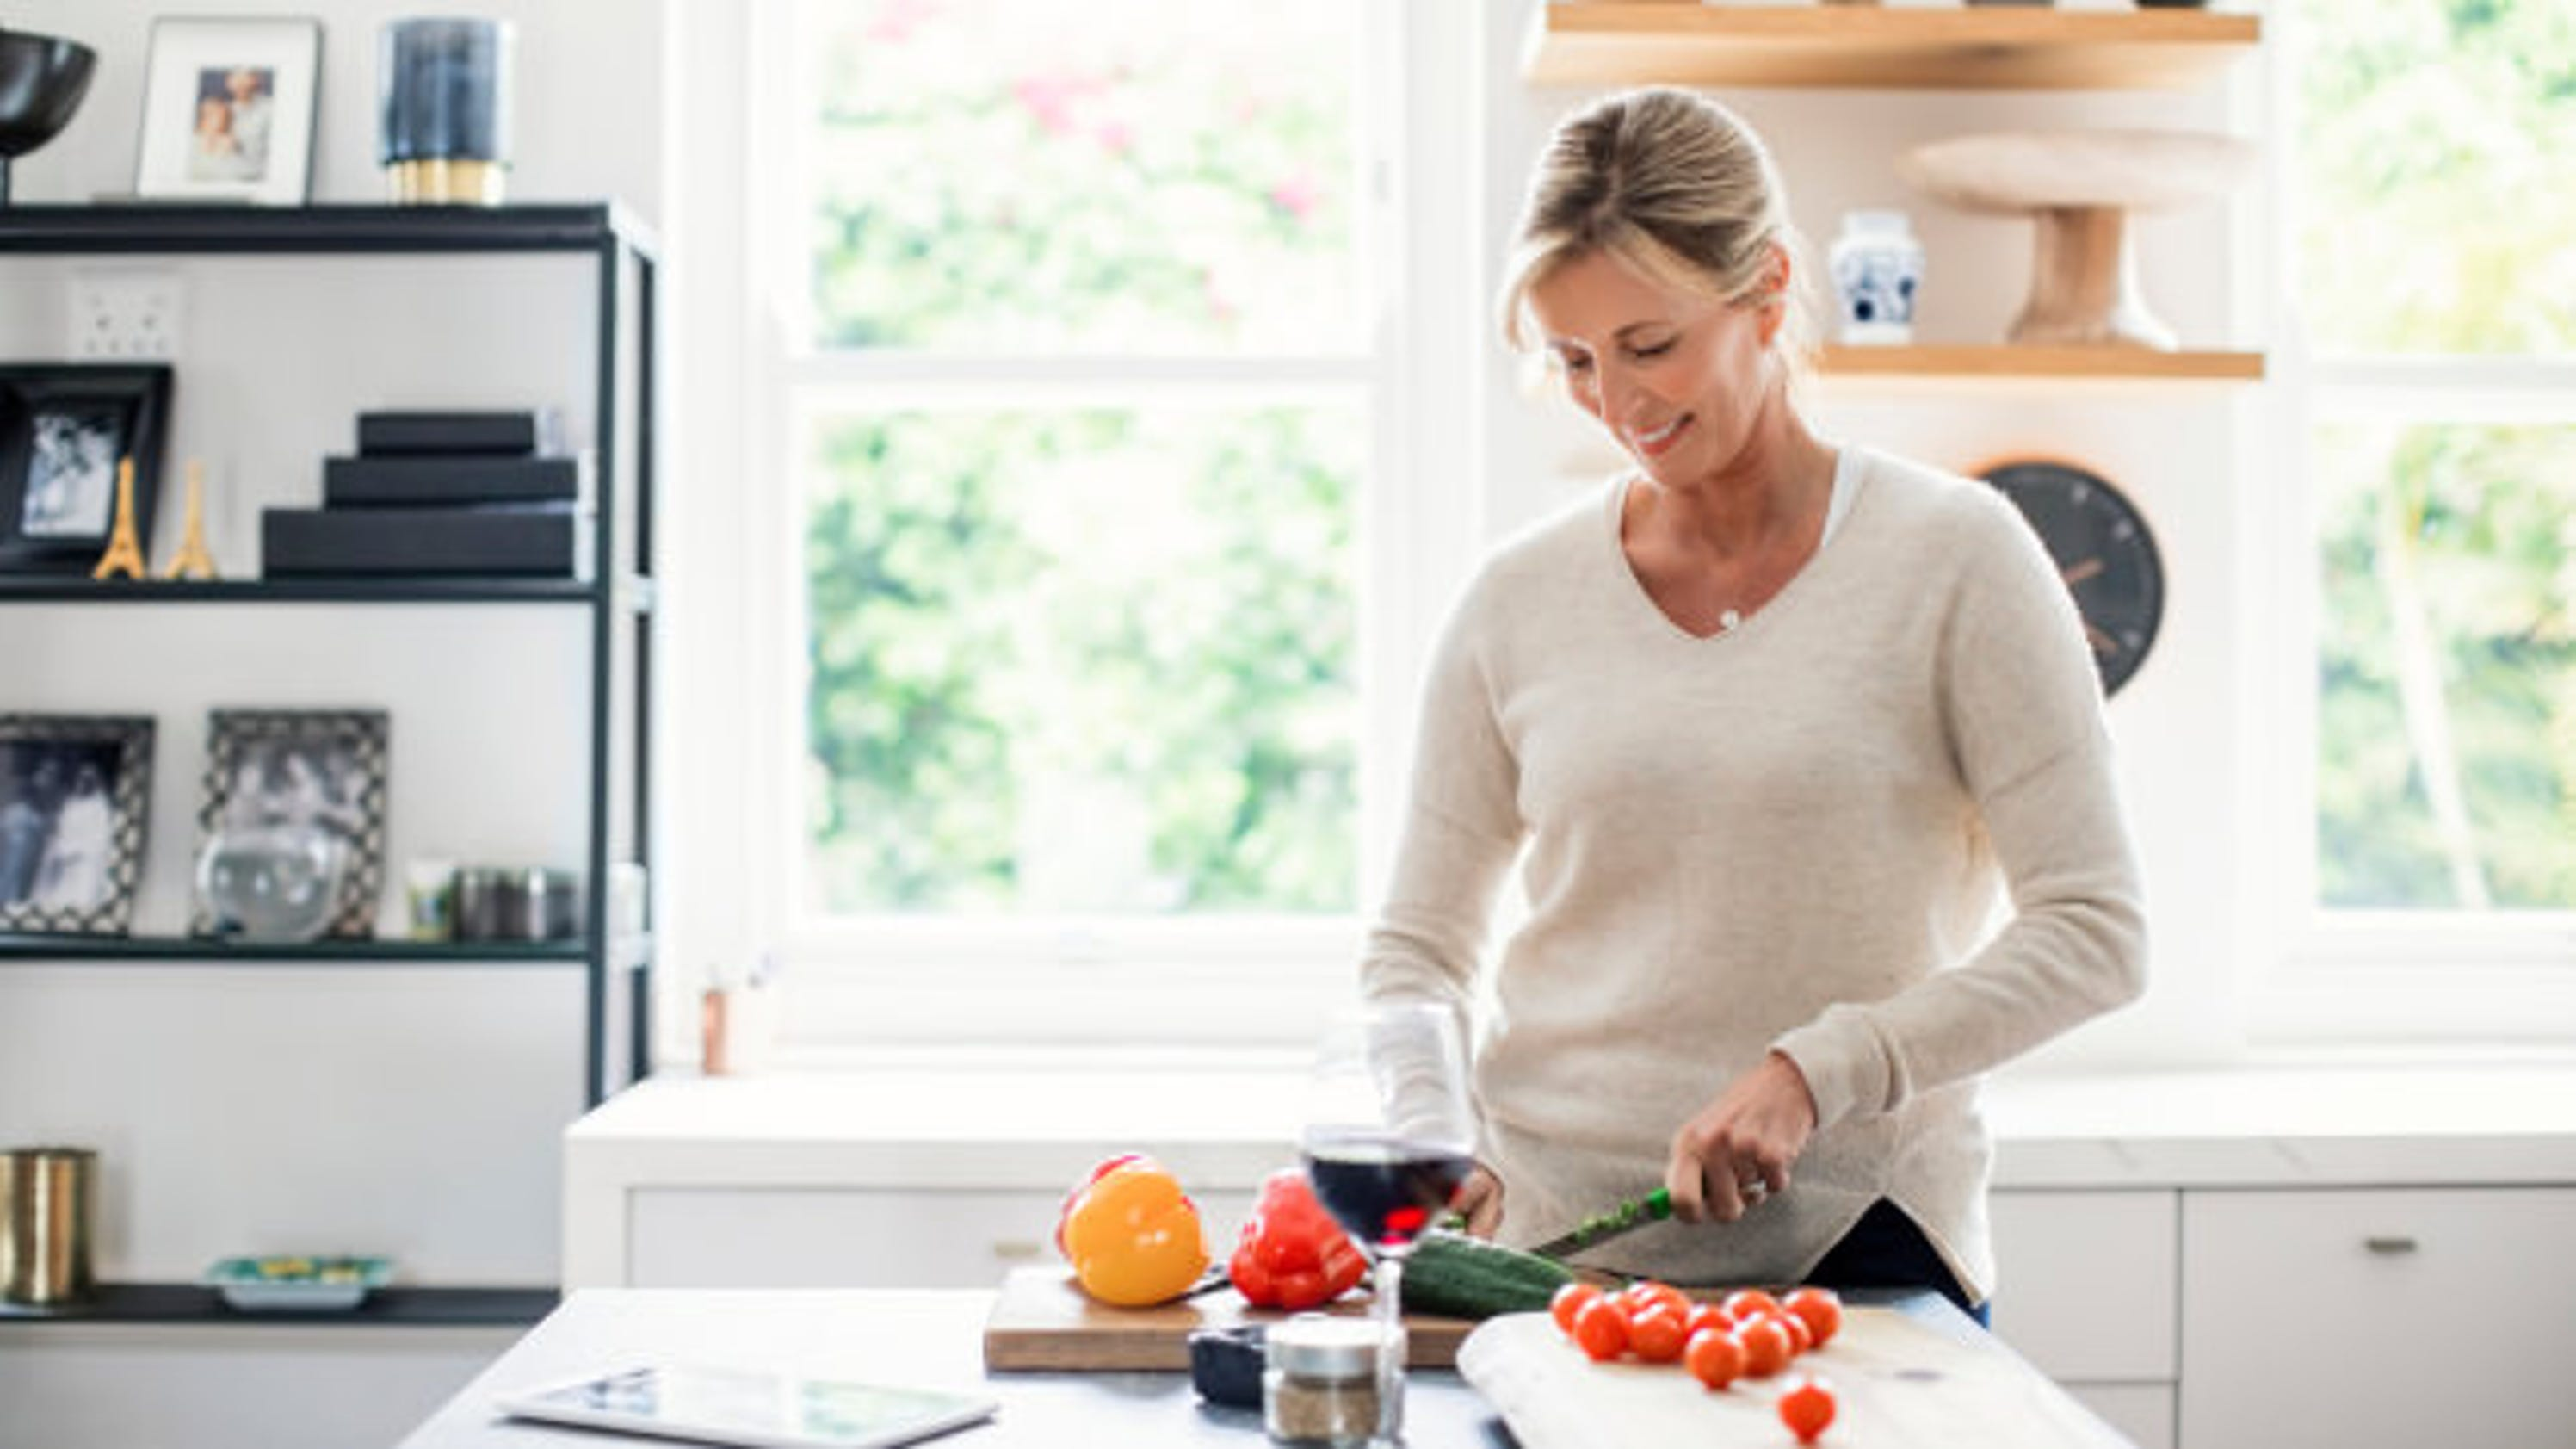 Fellow Millennials, you love cooking shows, how about learning to, you know, cook?